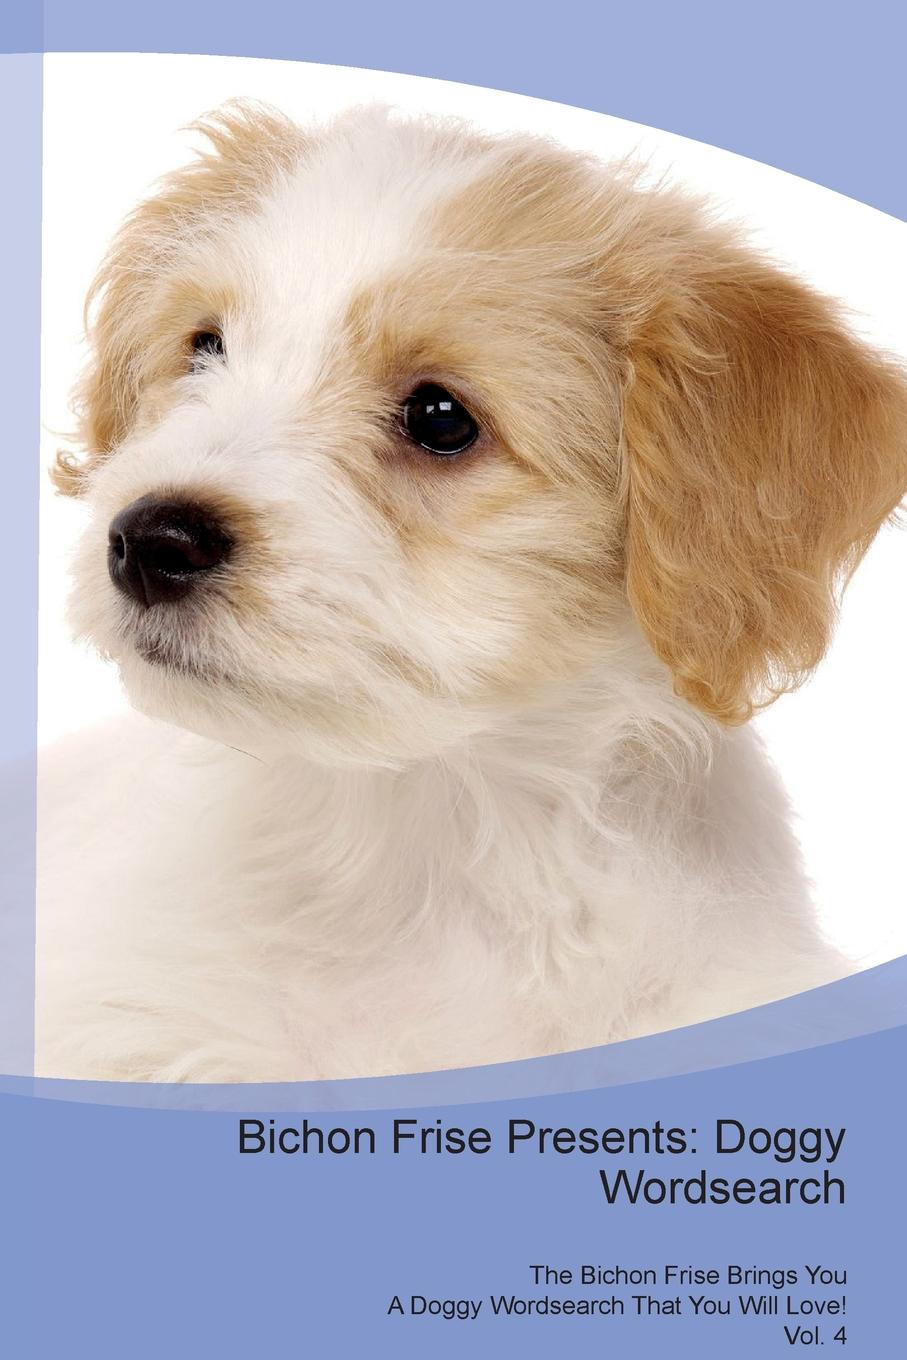 Doggy Puzzles Bichon Frise Presents. Wordsearch The Brings You A That Will Love! Vol. 4